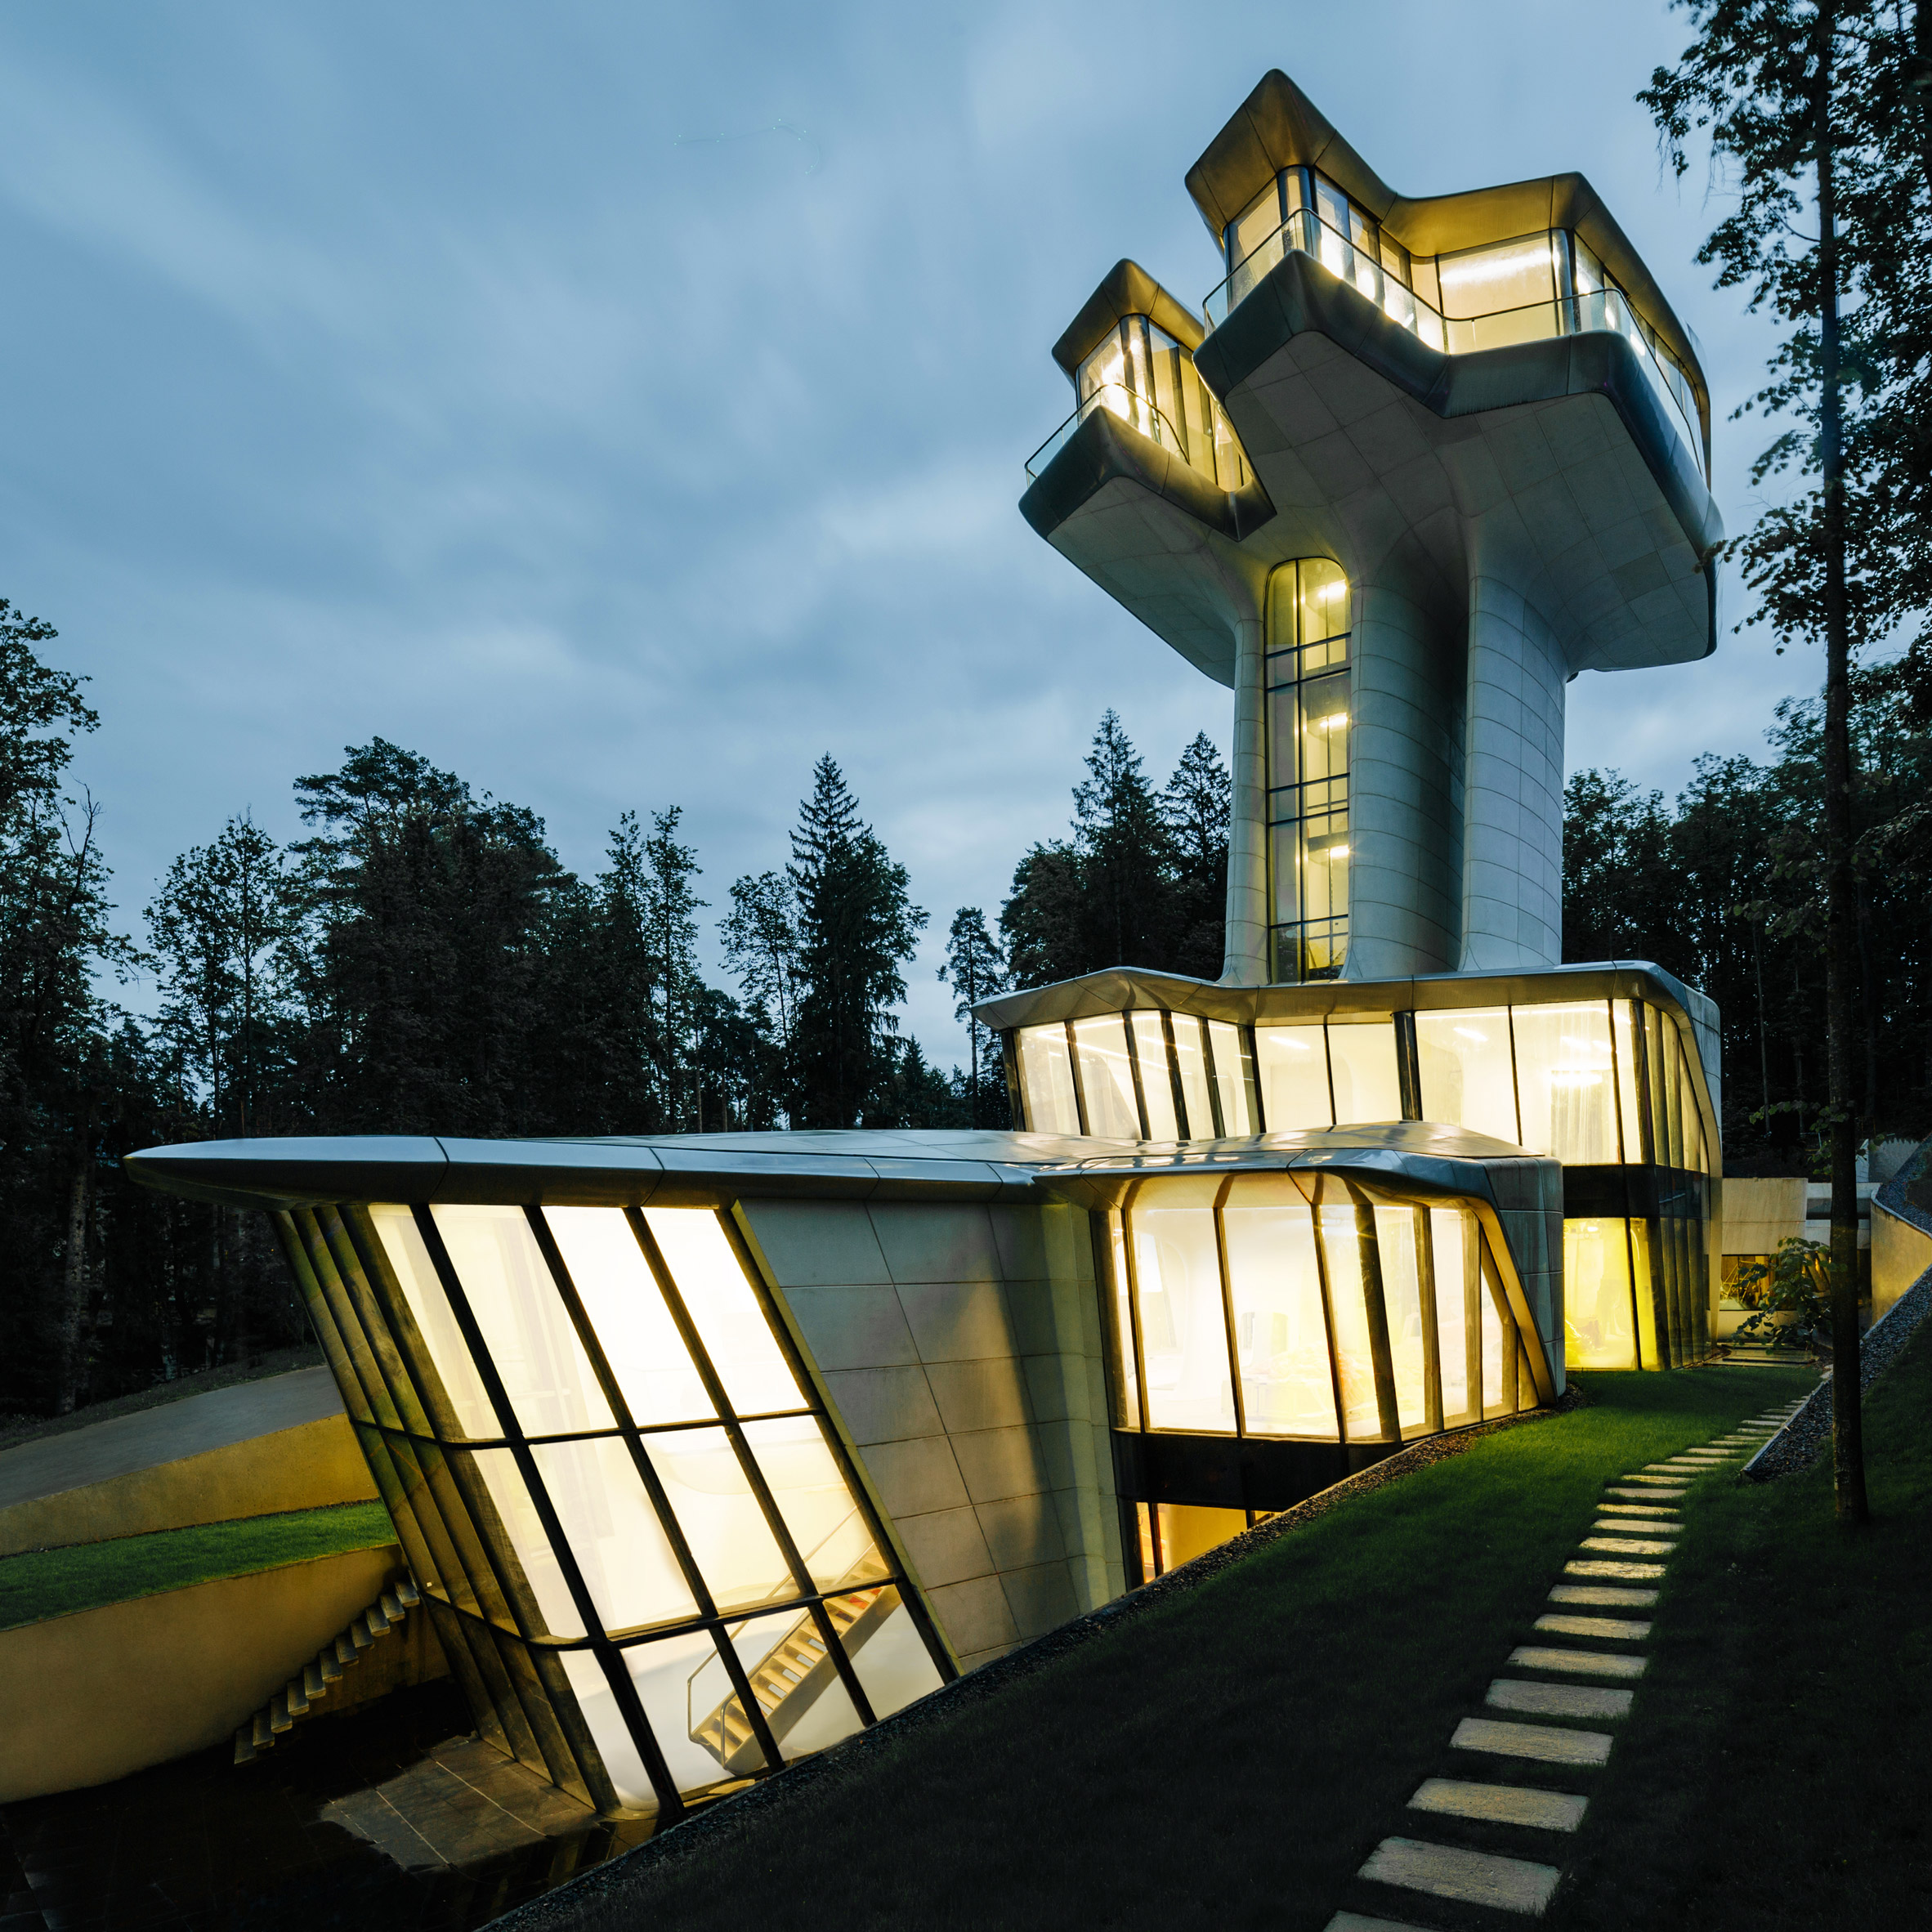 Zaha Hadid's only house finally completes in Russian forest